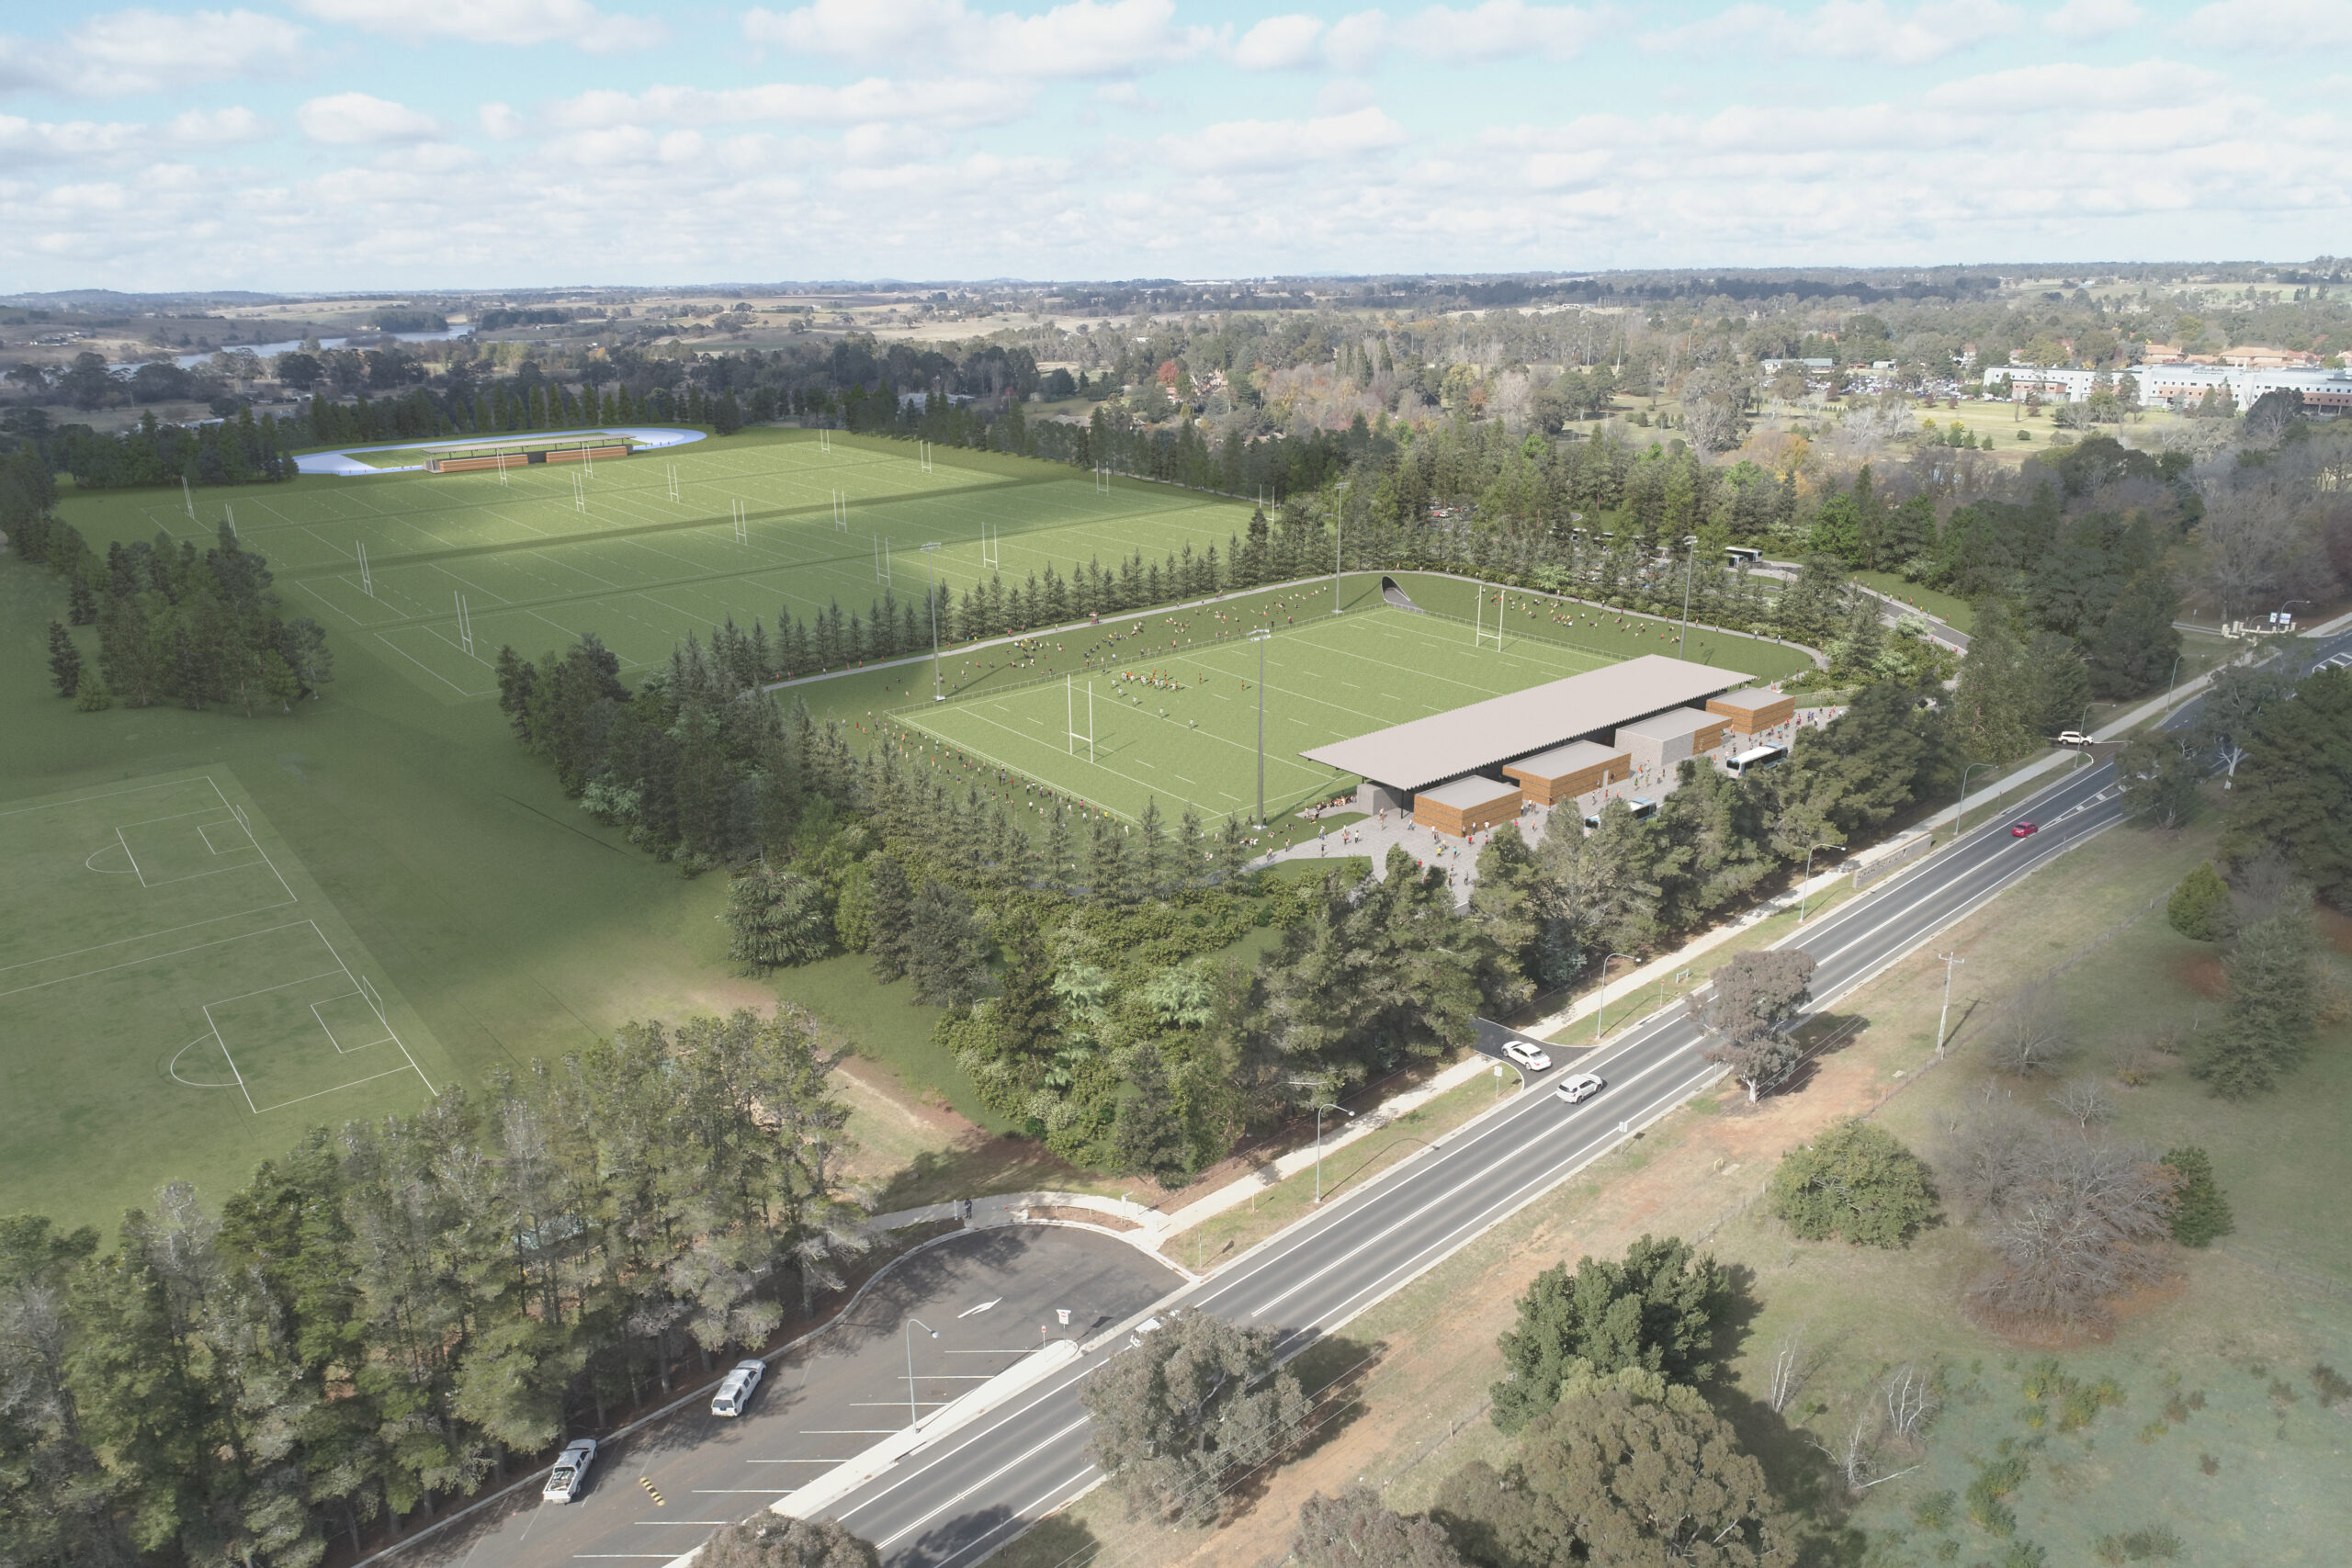 Artist impression of the proposed sporting precinct